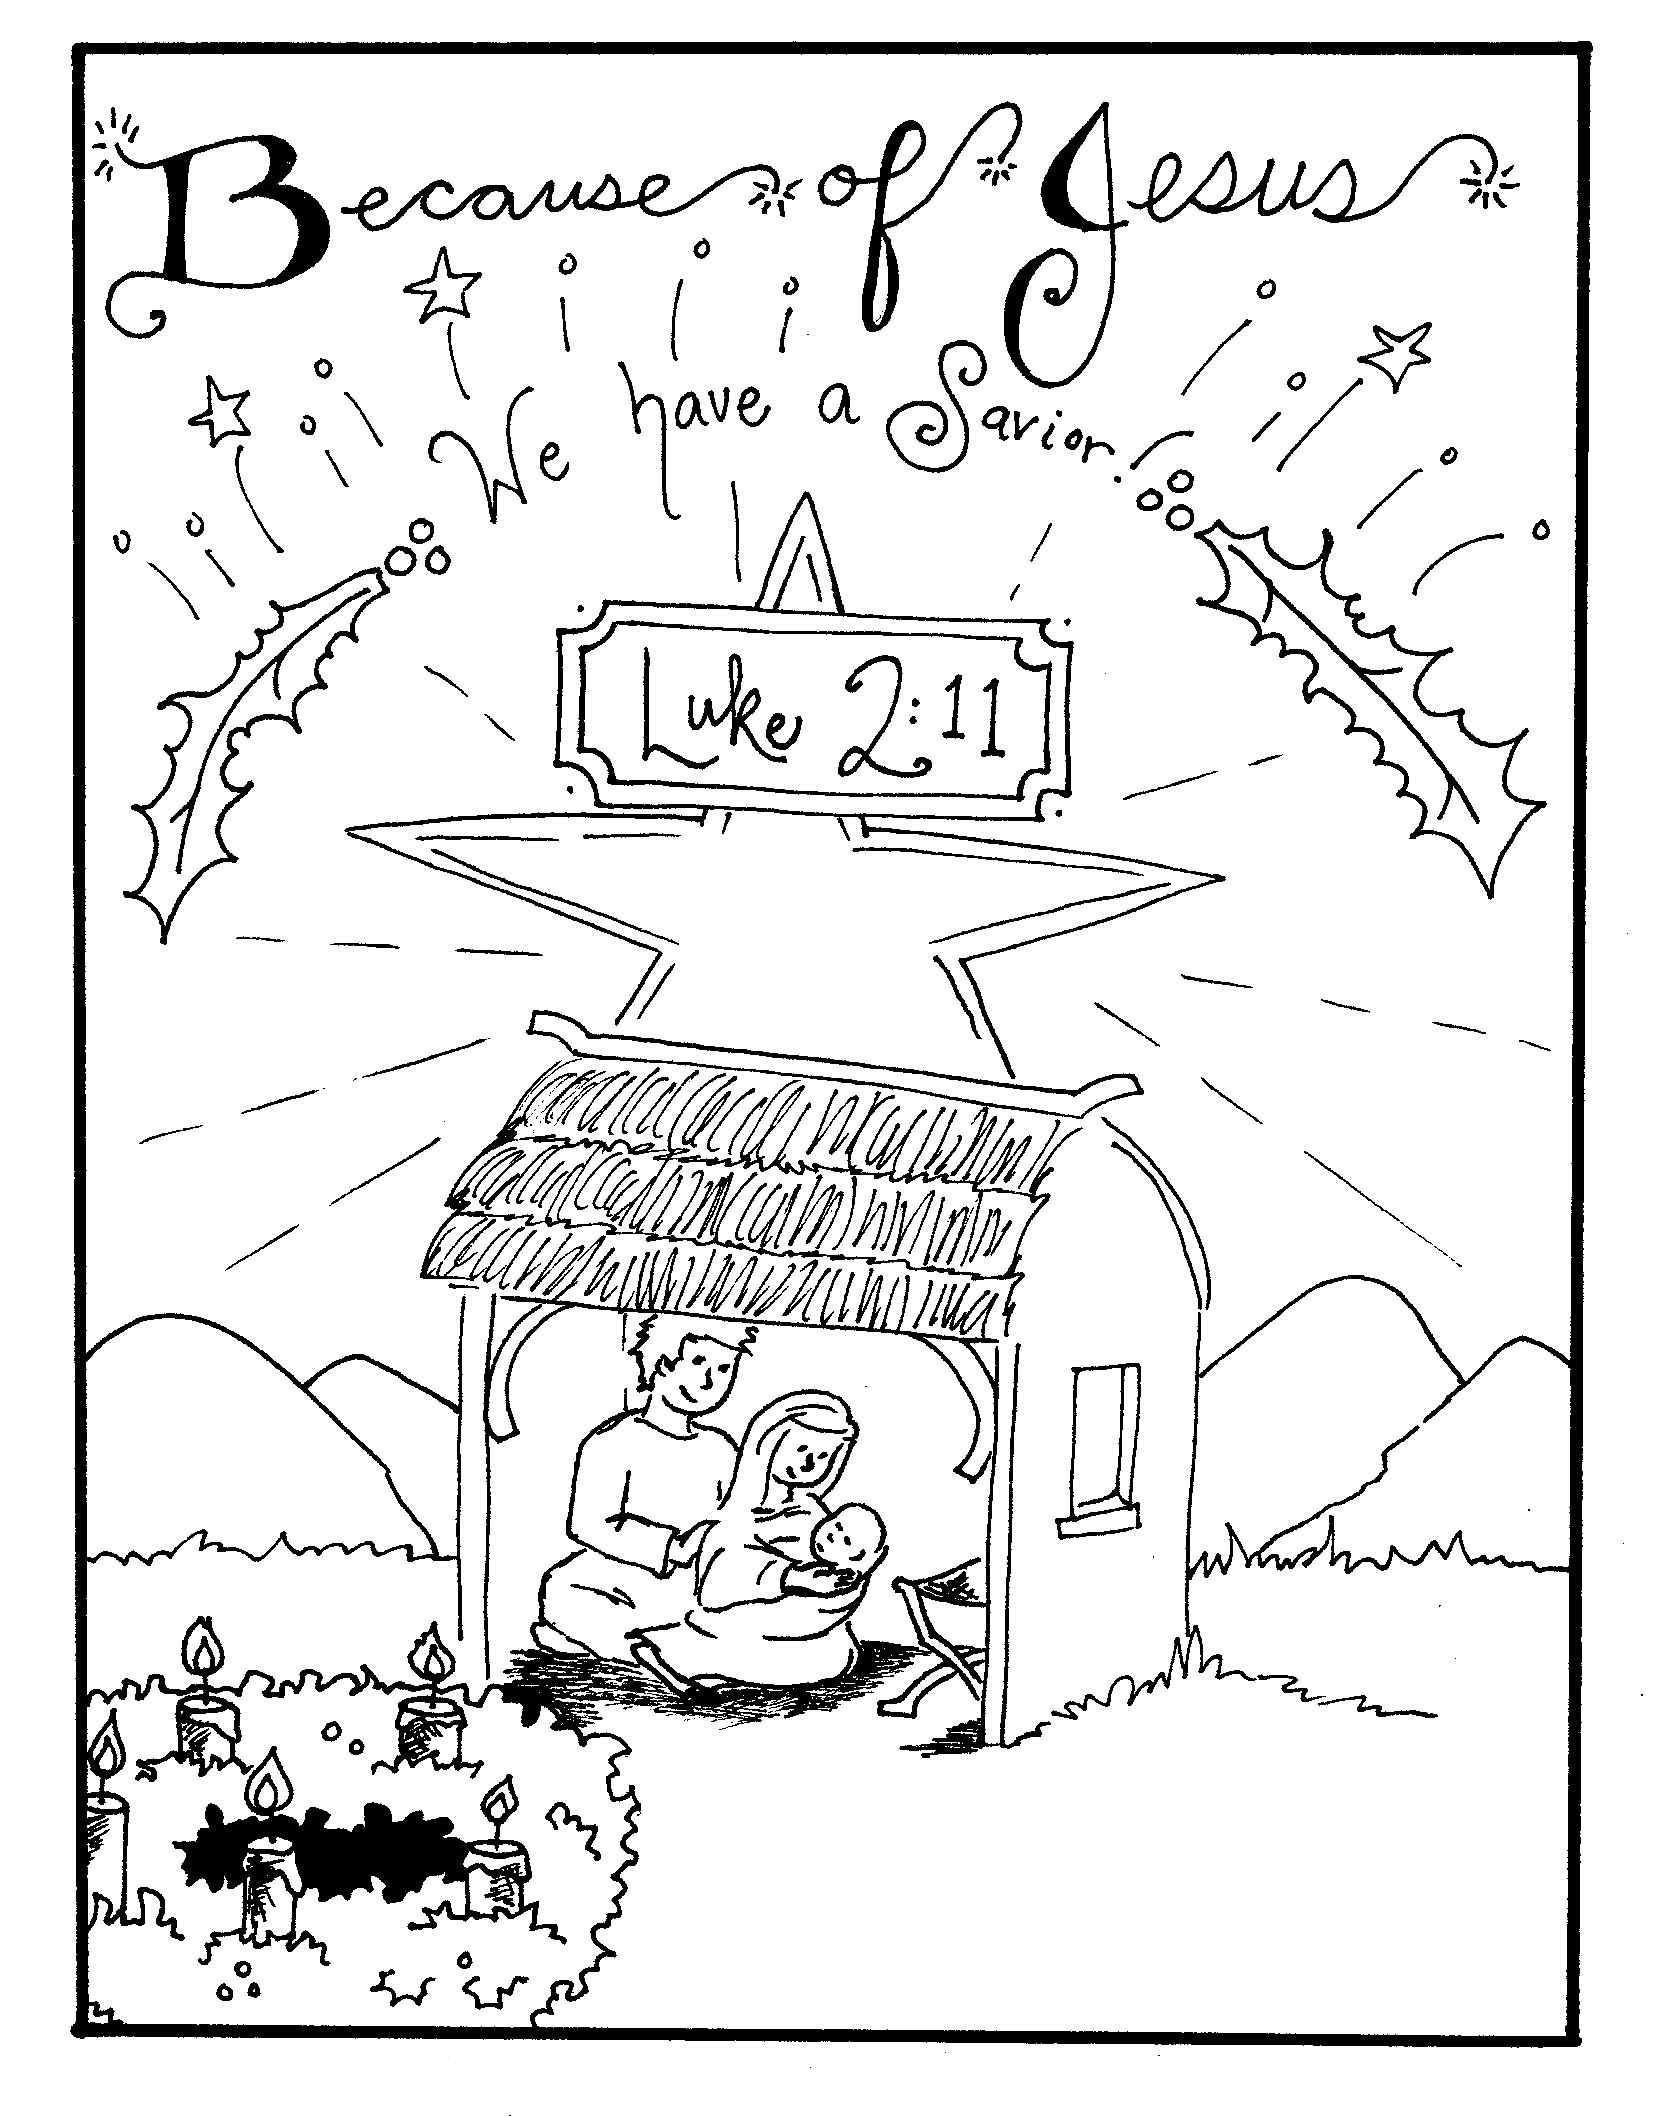 nativity scene coloring book pages - photo#27